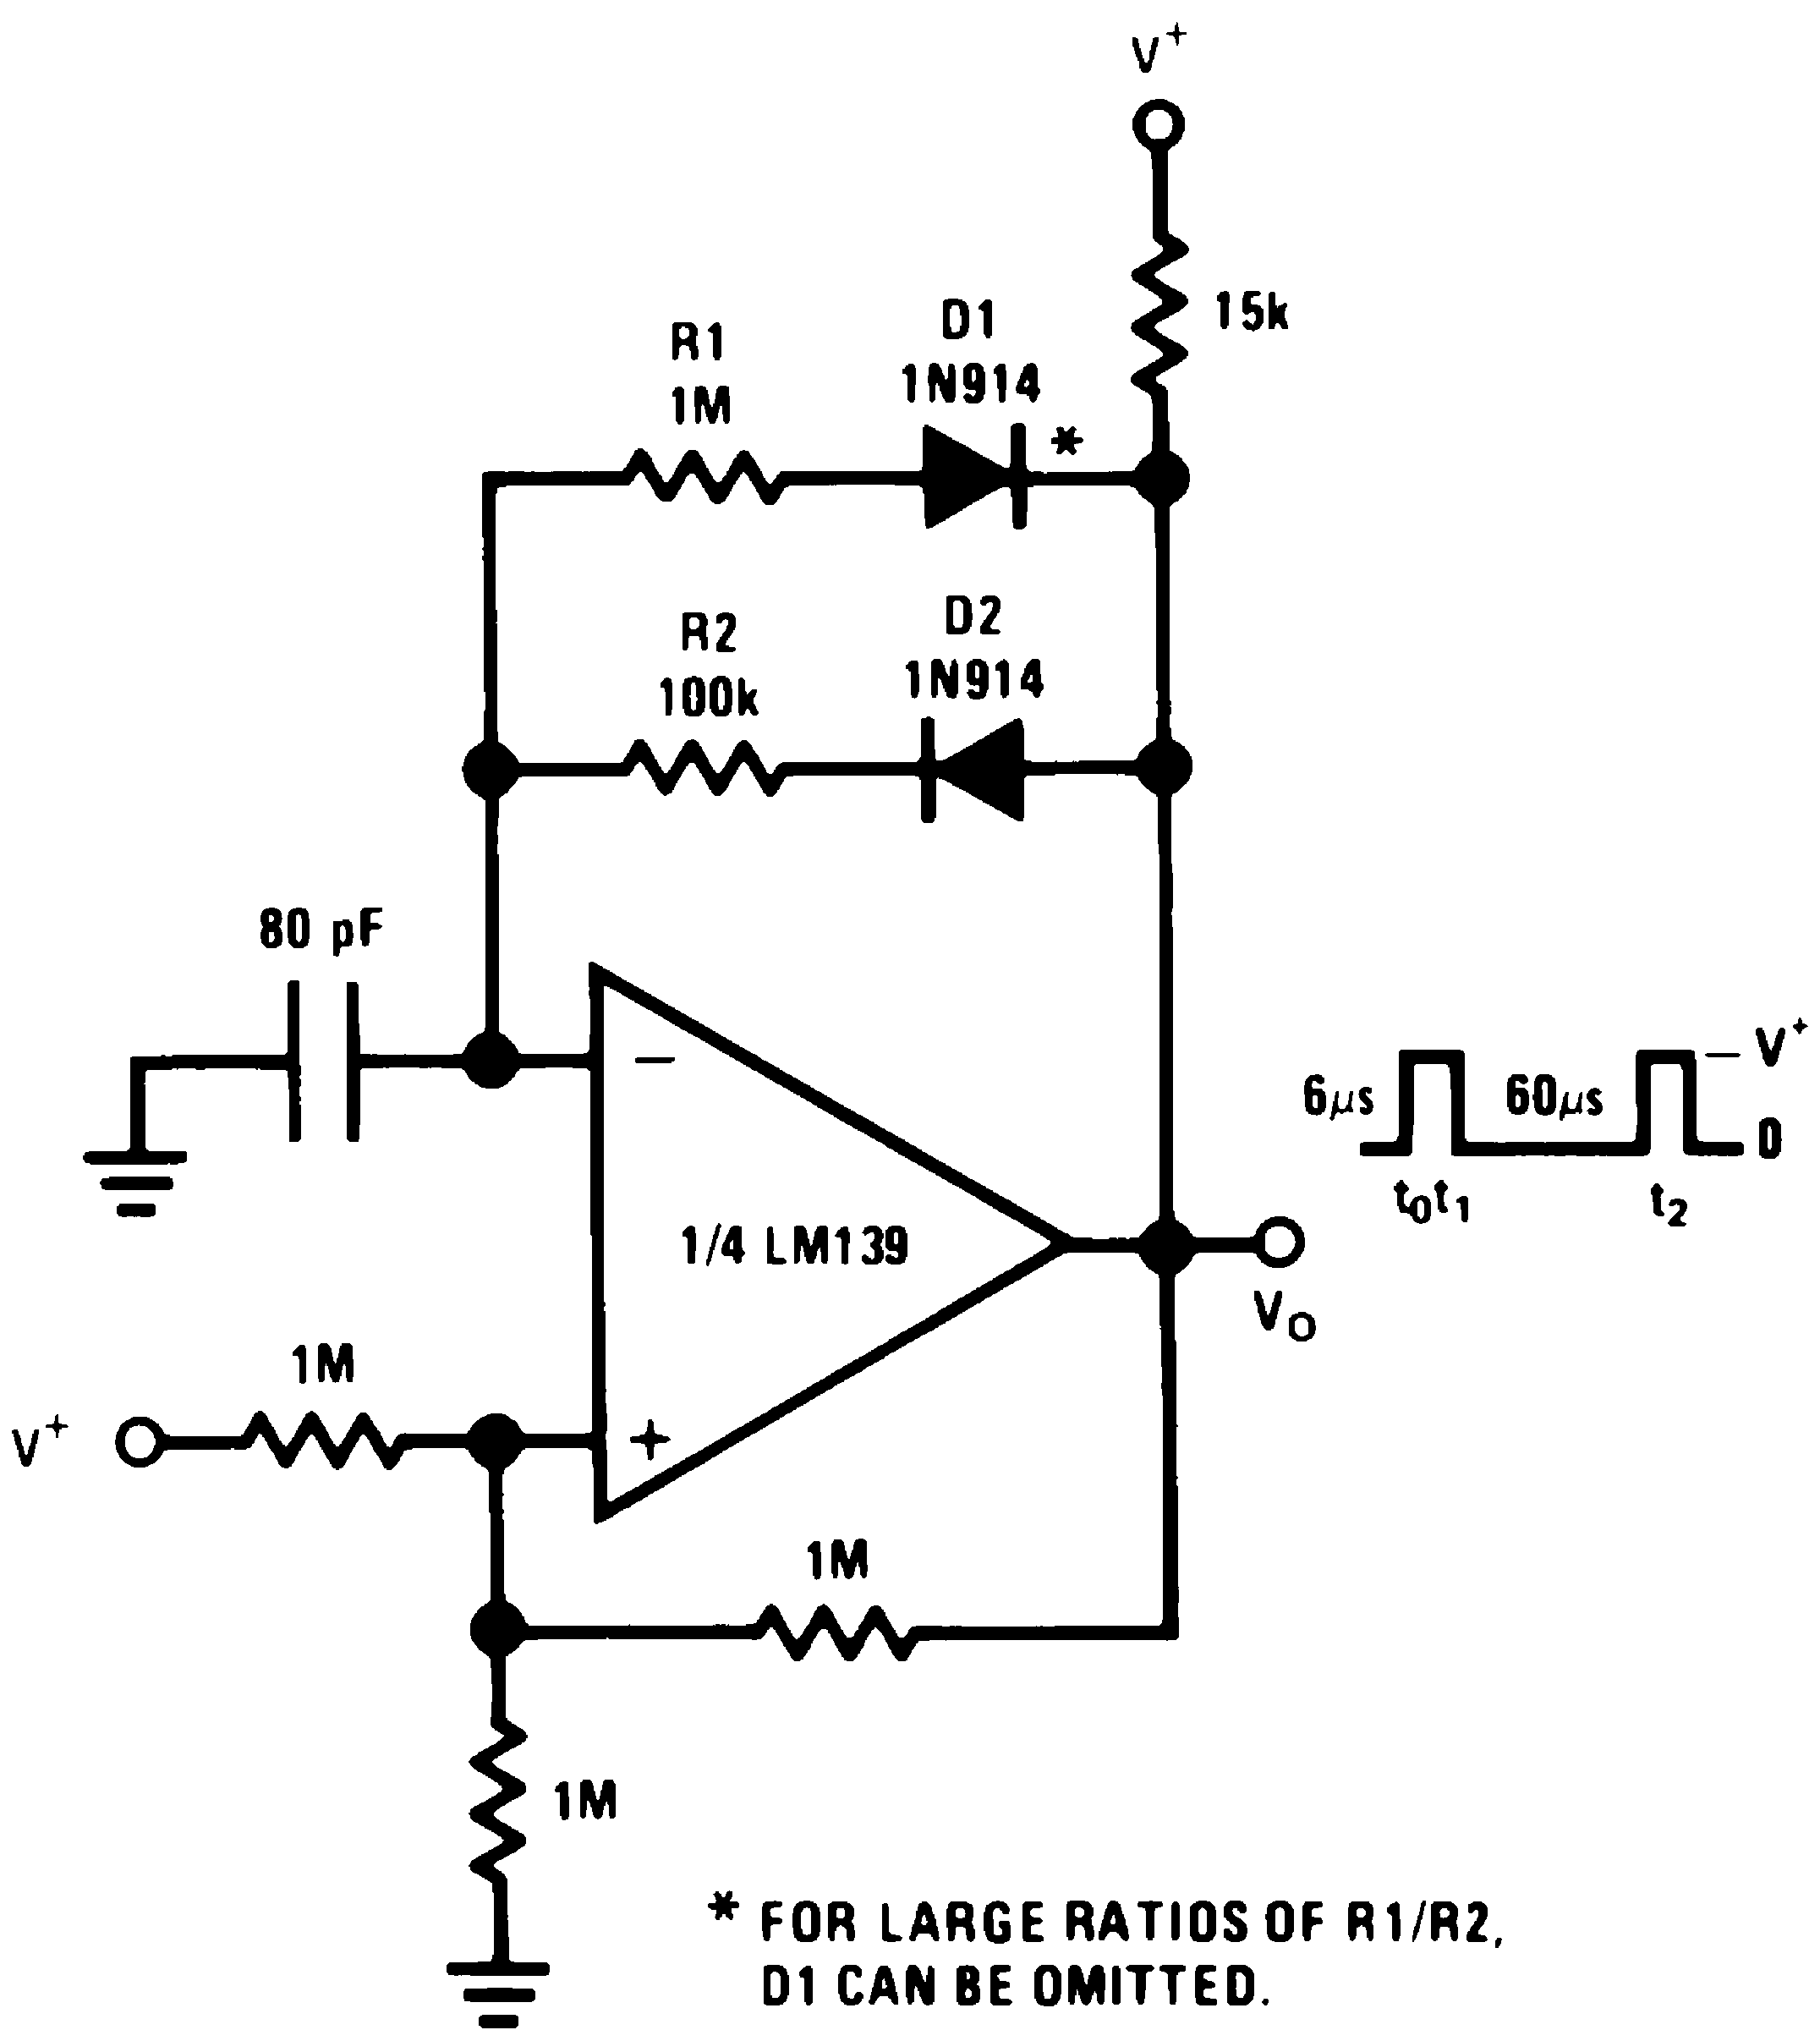 Lm239 N The Circuit Schematic For Lm339 Quad Voltage Comparator 00570617